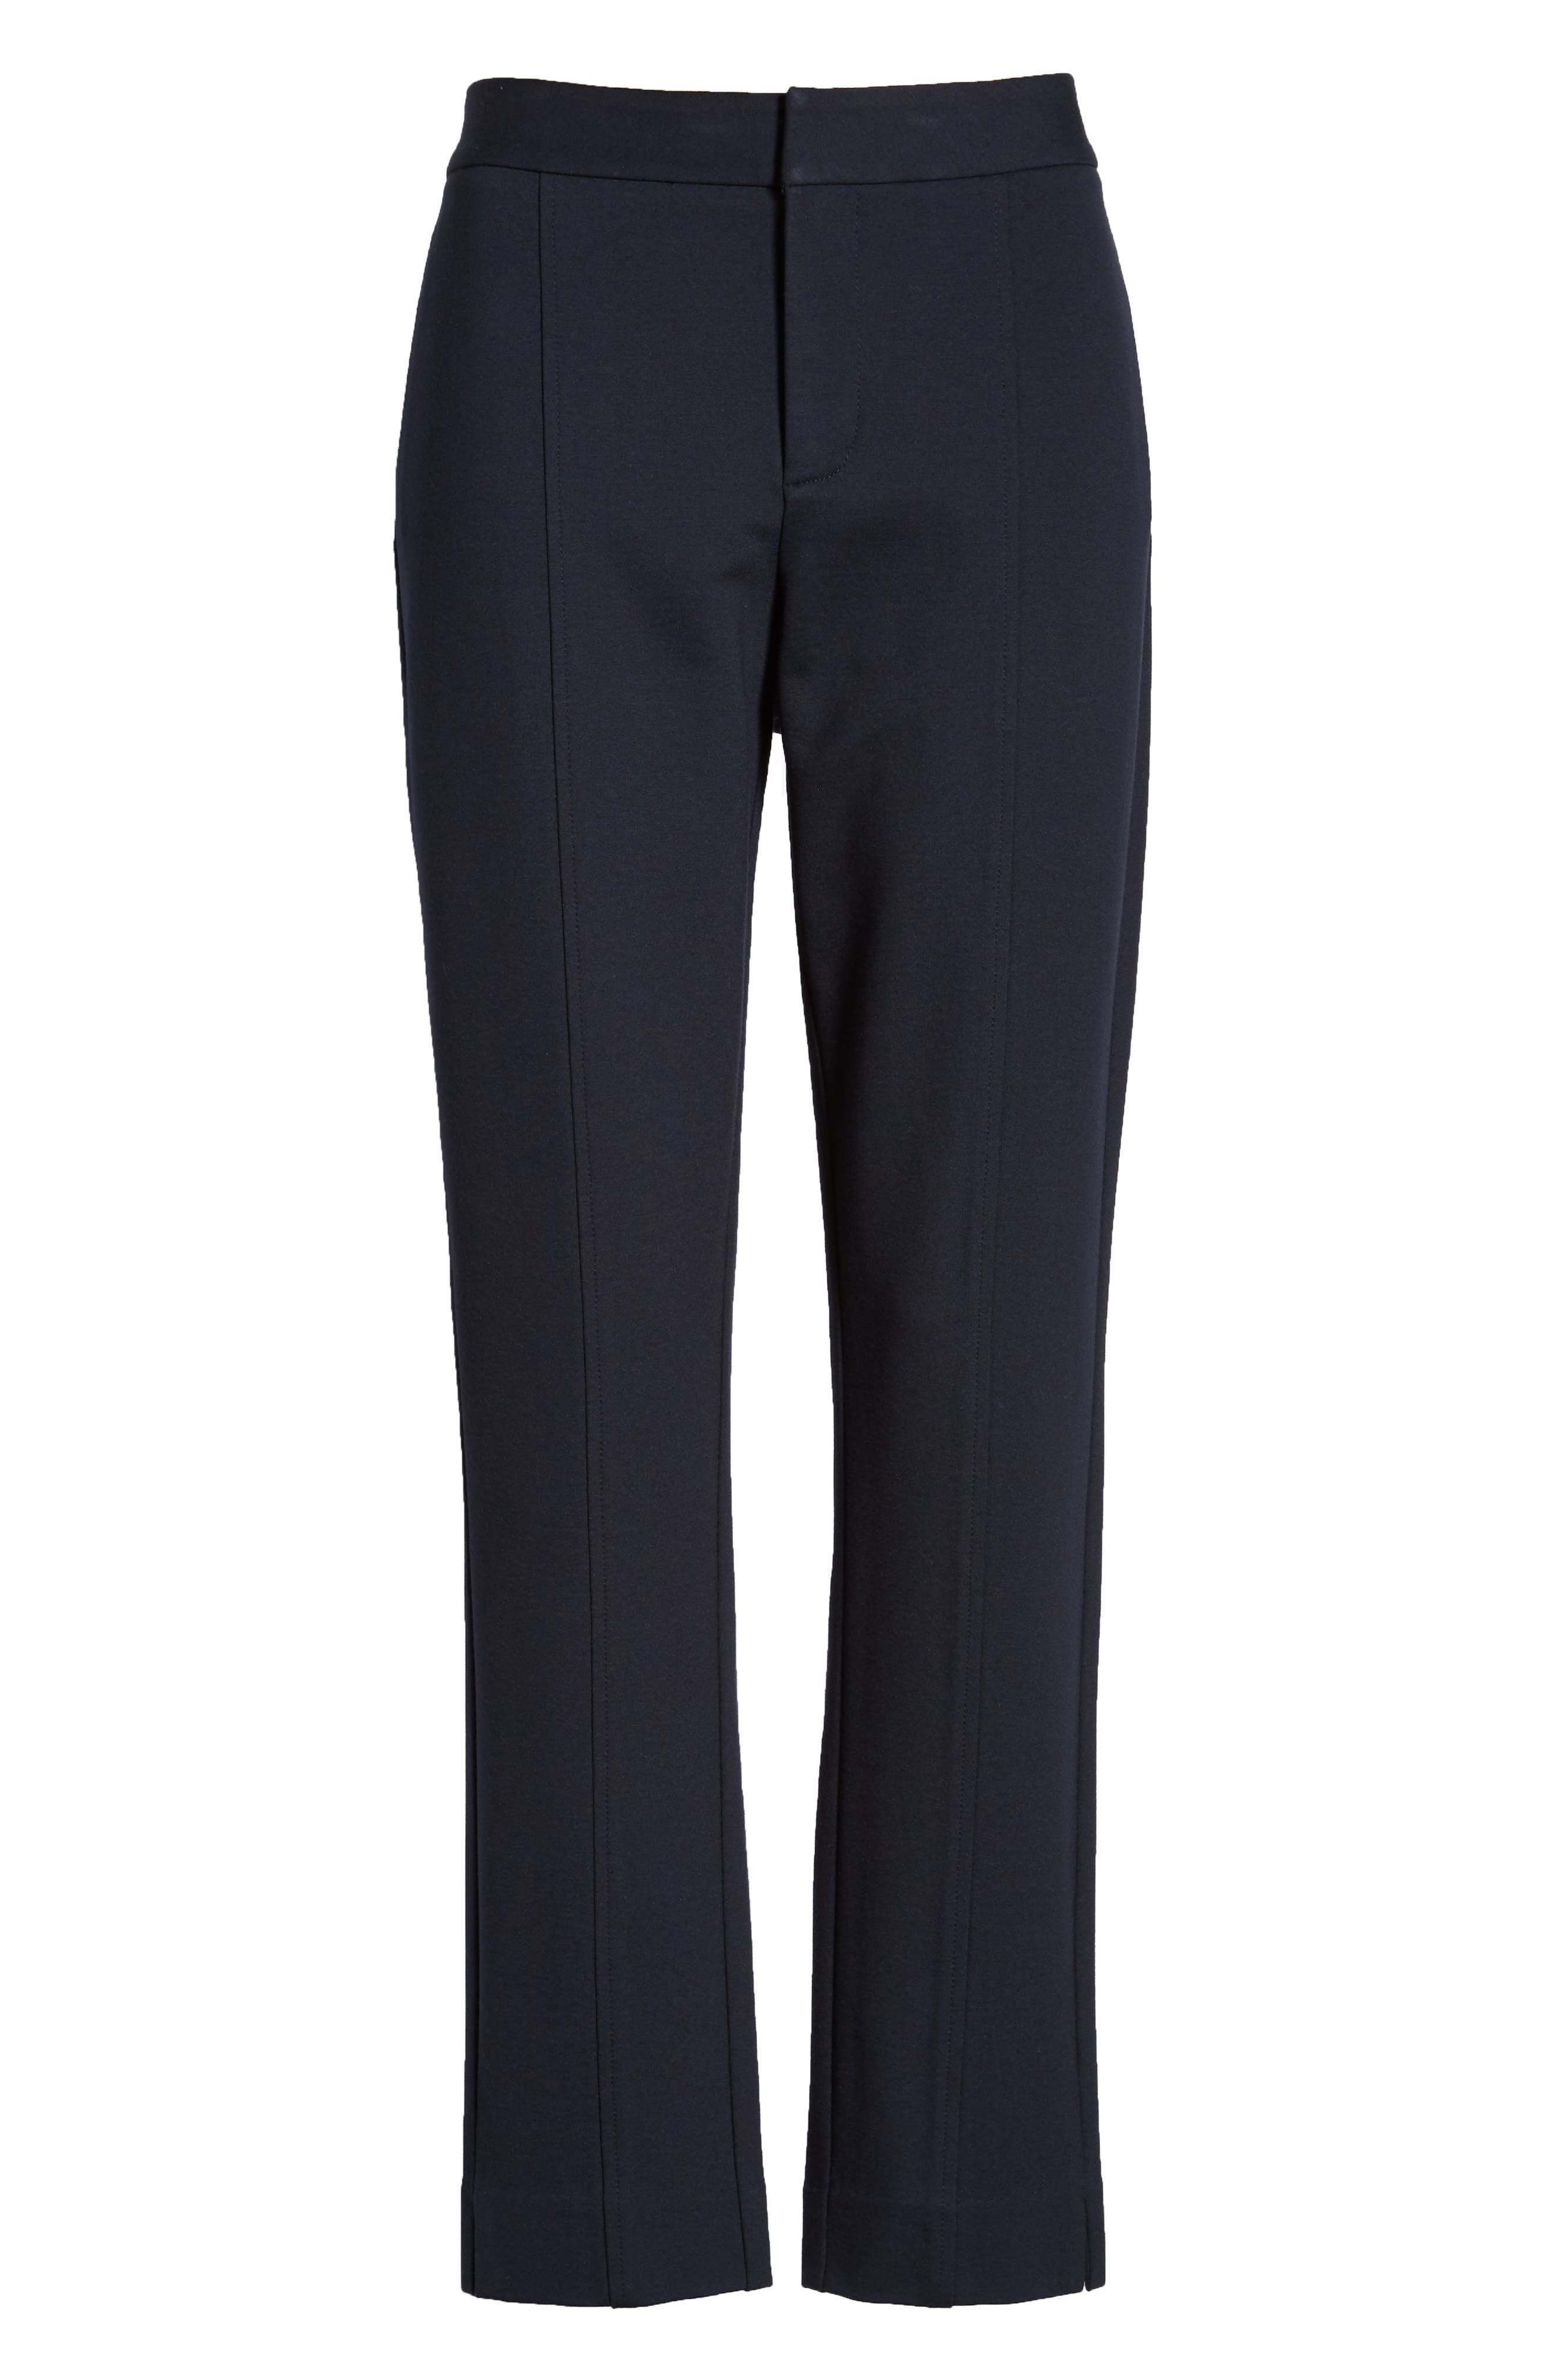 Betty Stretch Ankle Pants,                             Alternate thumbnail 7, color,                             412